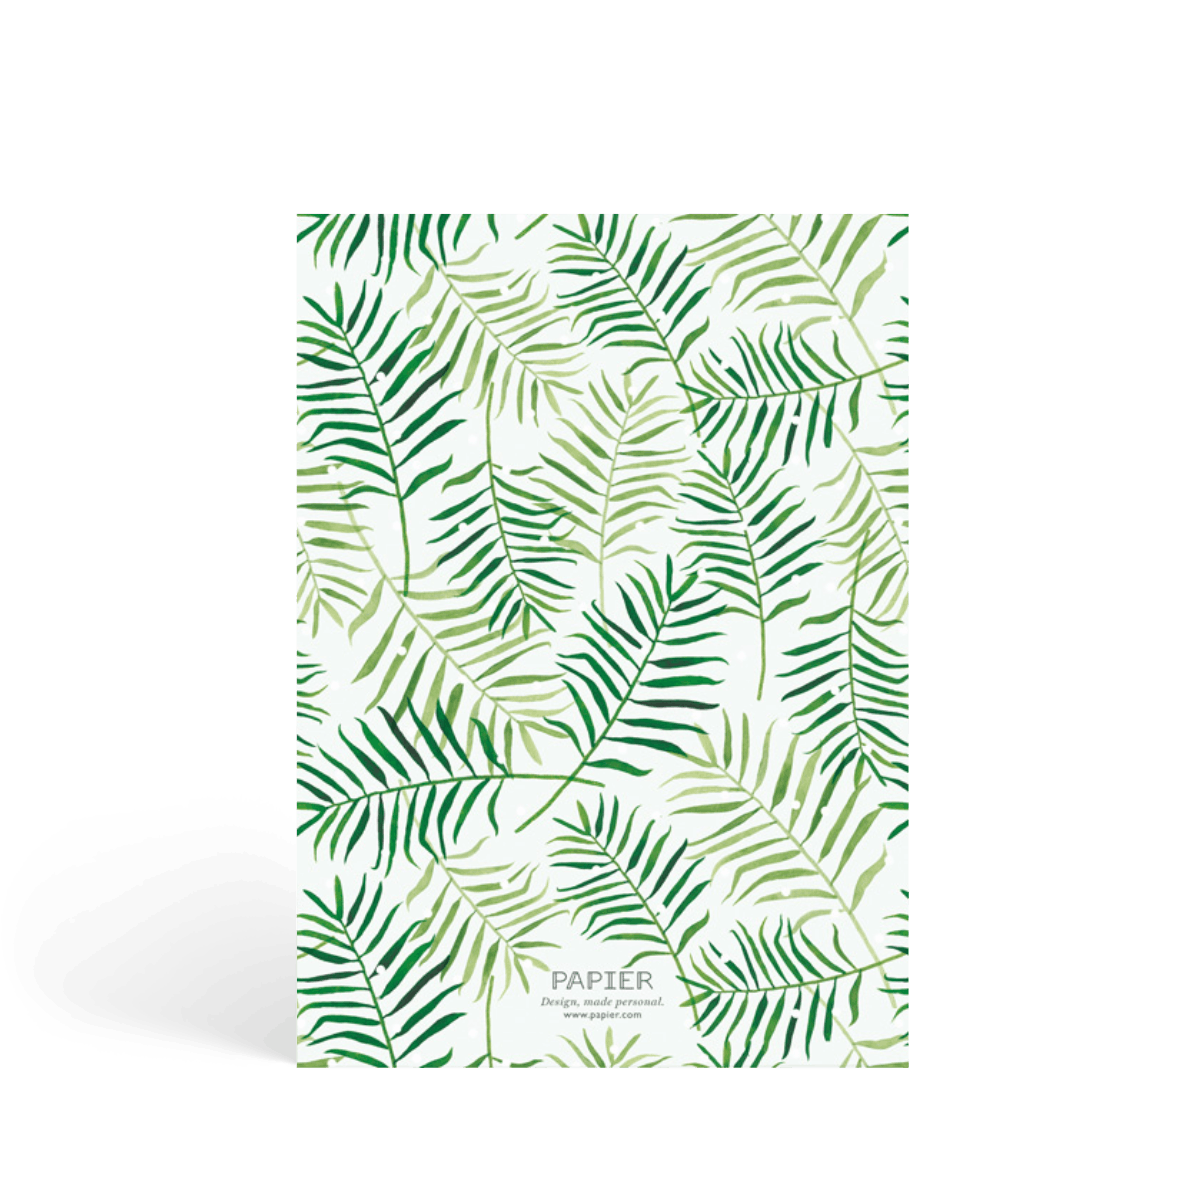 Https%3a%2f%2fwww.papier.com%2fproduct image%2f72222%2f5%2fpalm leaves 17024 back 1555439386.png?ixlib=rb 1.1